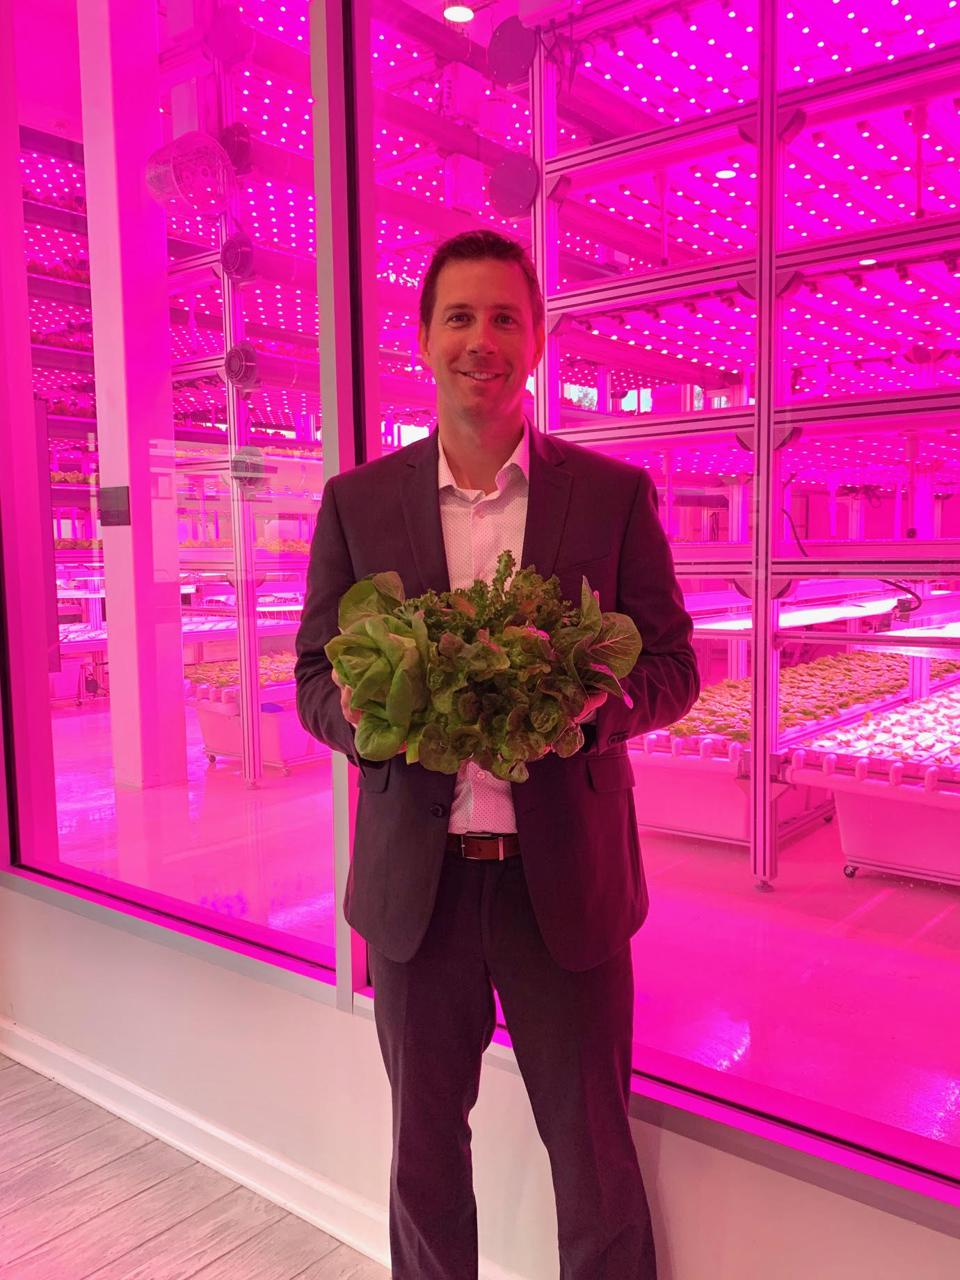 This Ain't Your Grandfather's Lettuce: Meet The Farm Of The Future